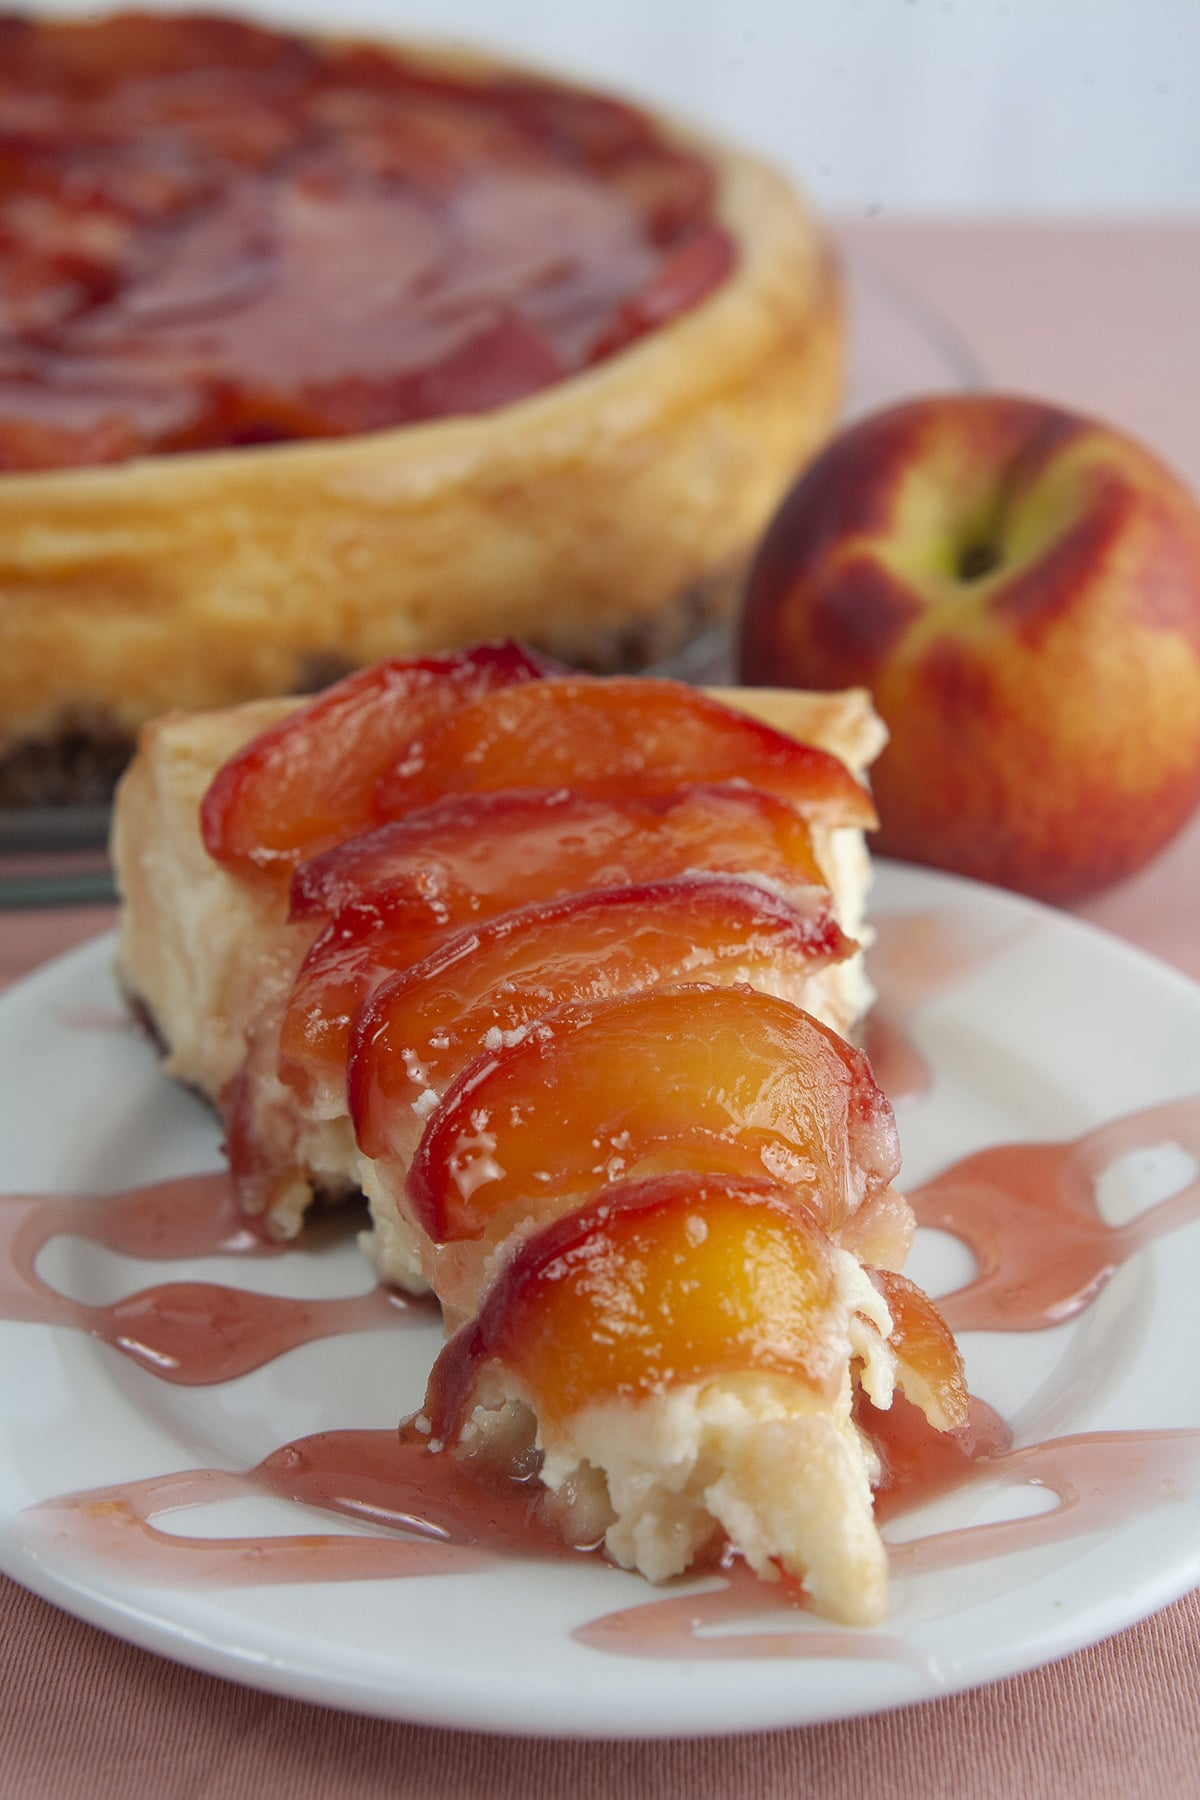 A slice of peach cheesecake with a pink drizzle, next to the whole cheesecake, and a fresh peach.